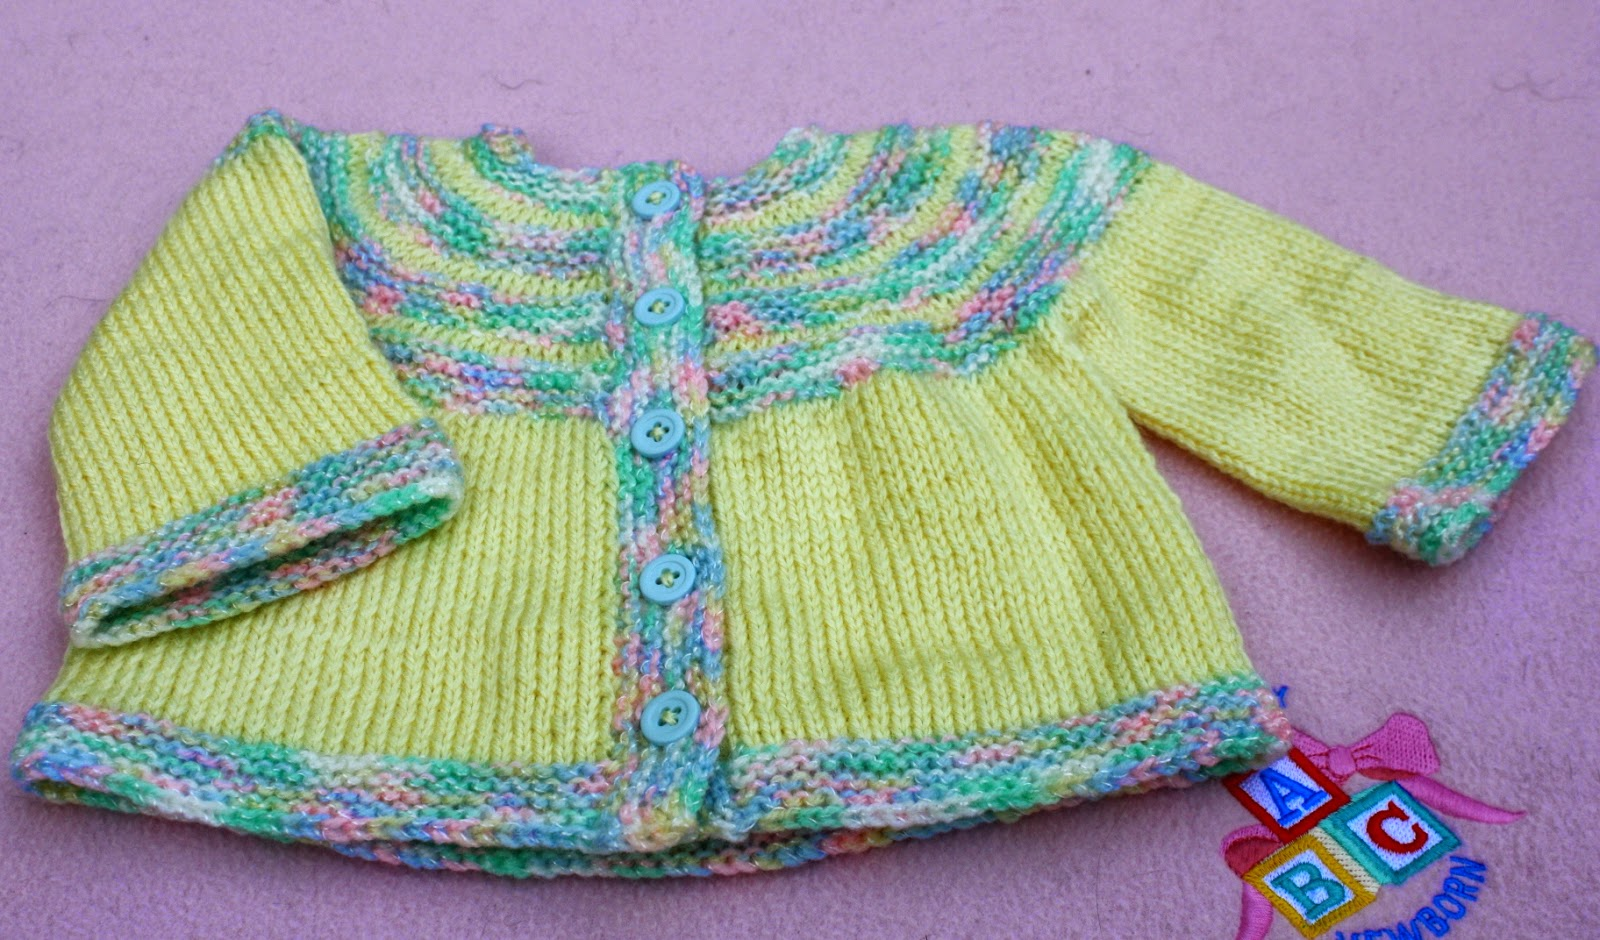 All knitted lace new pattern release two color baby cardigan happy knitting natalia ps here is another color combination bankloansurffo Choice Image